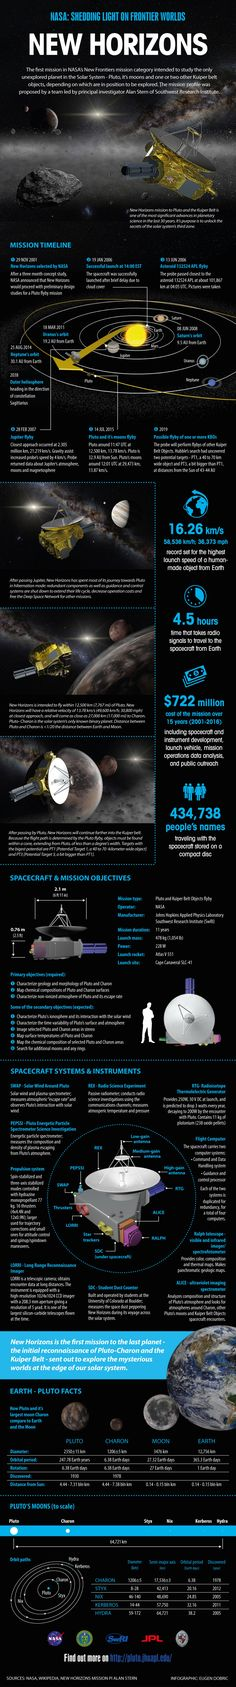 NASA: Sheddling Light on Frontier Worlds | New Horizons | The first mission in NASA's New Frontiers mission category intended to study the only unexplored planet in the Solar System - Pluto, it's moons and one or two other Kuiper belt objects, depending on which are in position to be explored. The mission profile was proposed by a team led by principal investigator Alan Stern of Southwest Research Institute. ♥ Save for reference.